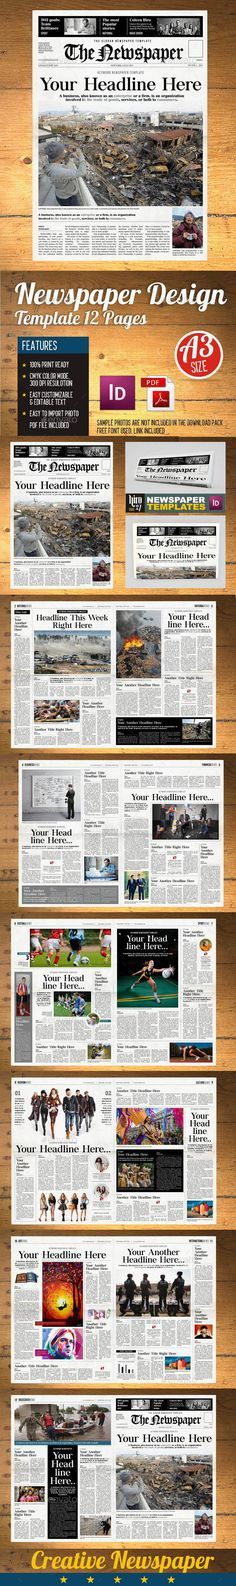 20+ Old Newspaper Template u2013 PSD, Indesign and Ai Format Dplex - newspaper headline template